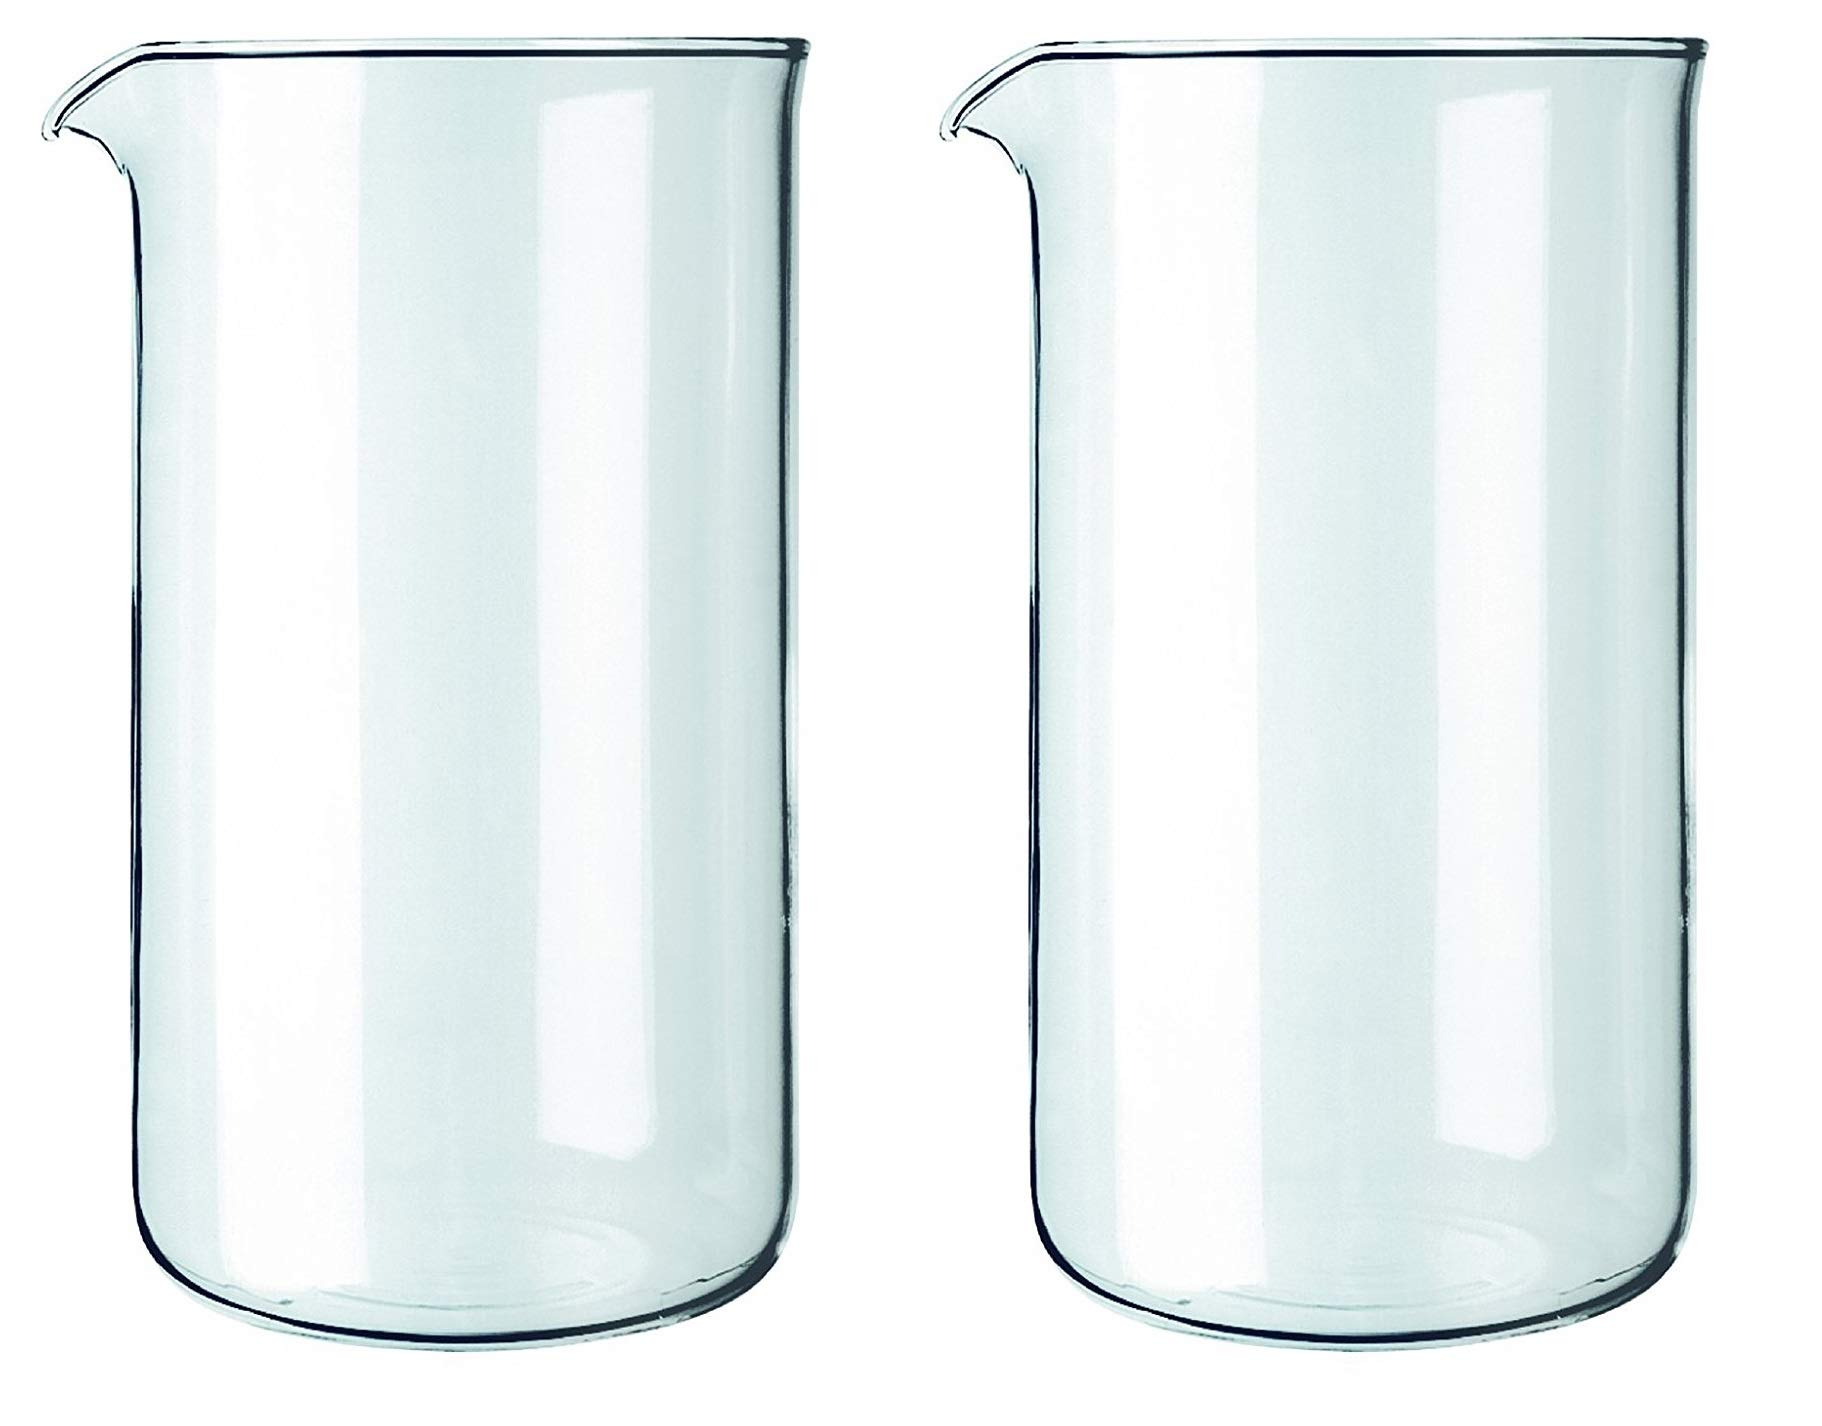 Bodum Spare Glass Carafe for French Press Coffee Maker, 8-Cup, 1.0-Liter, 34-Ounce, Set of 2 by Bodum